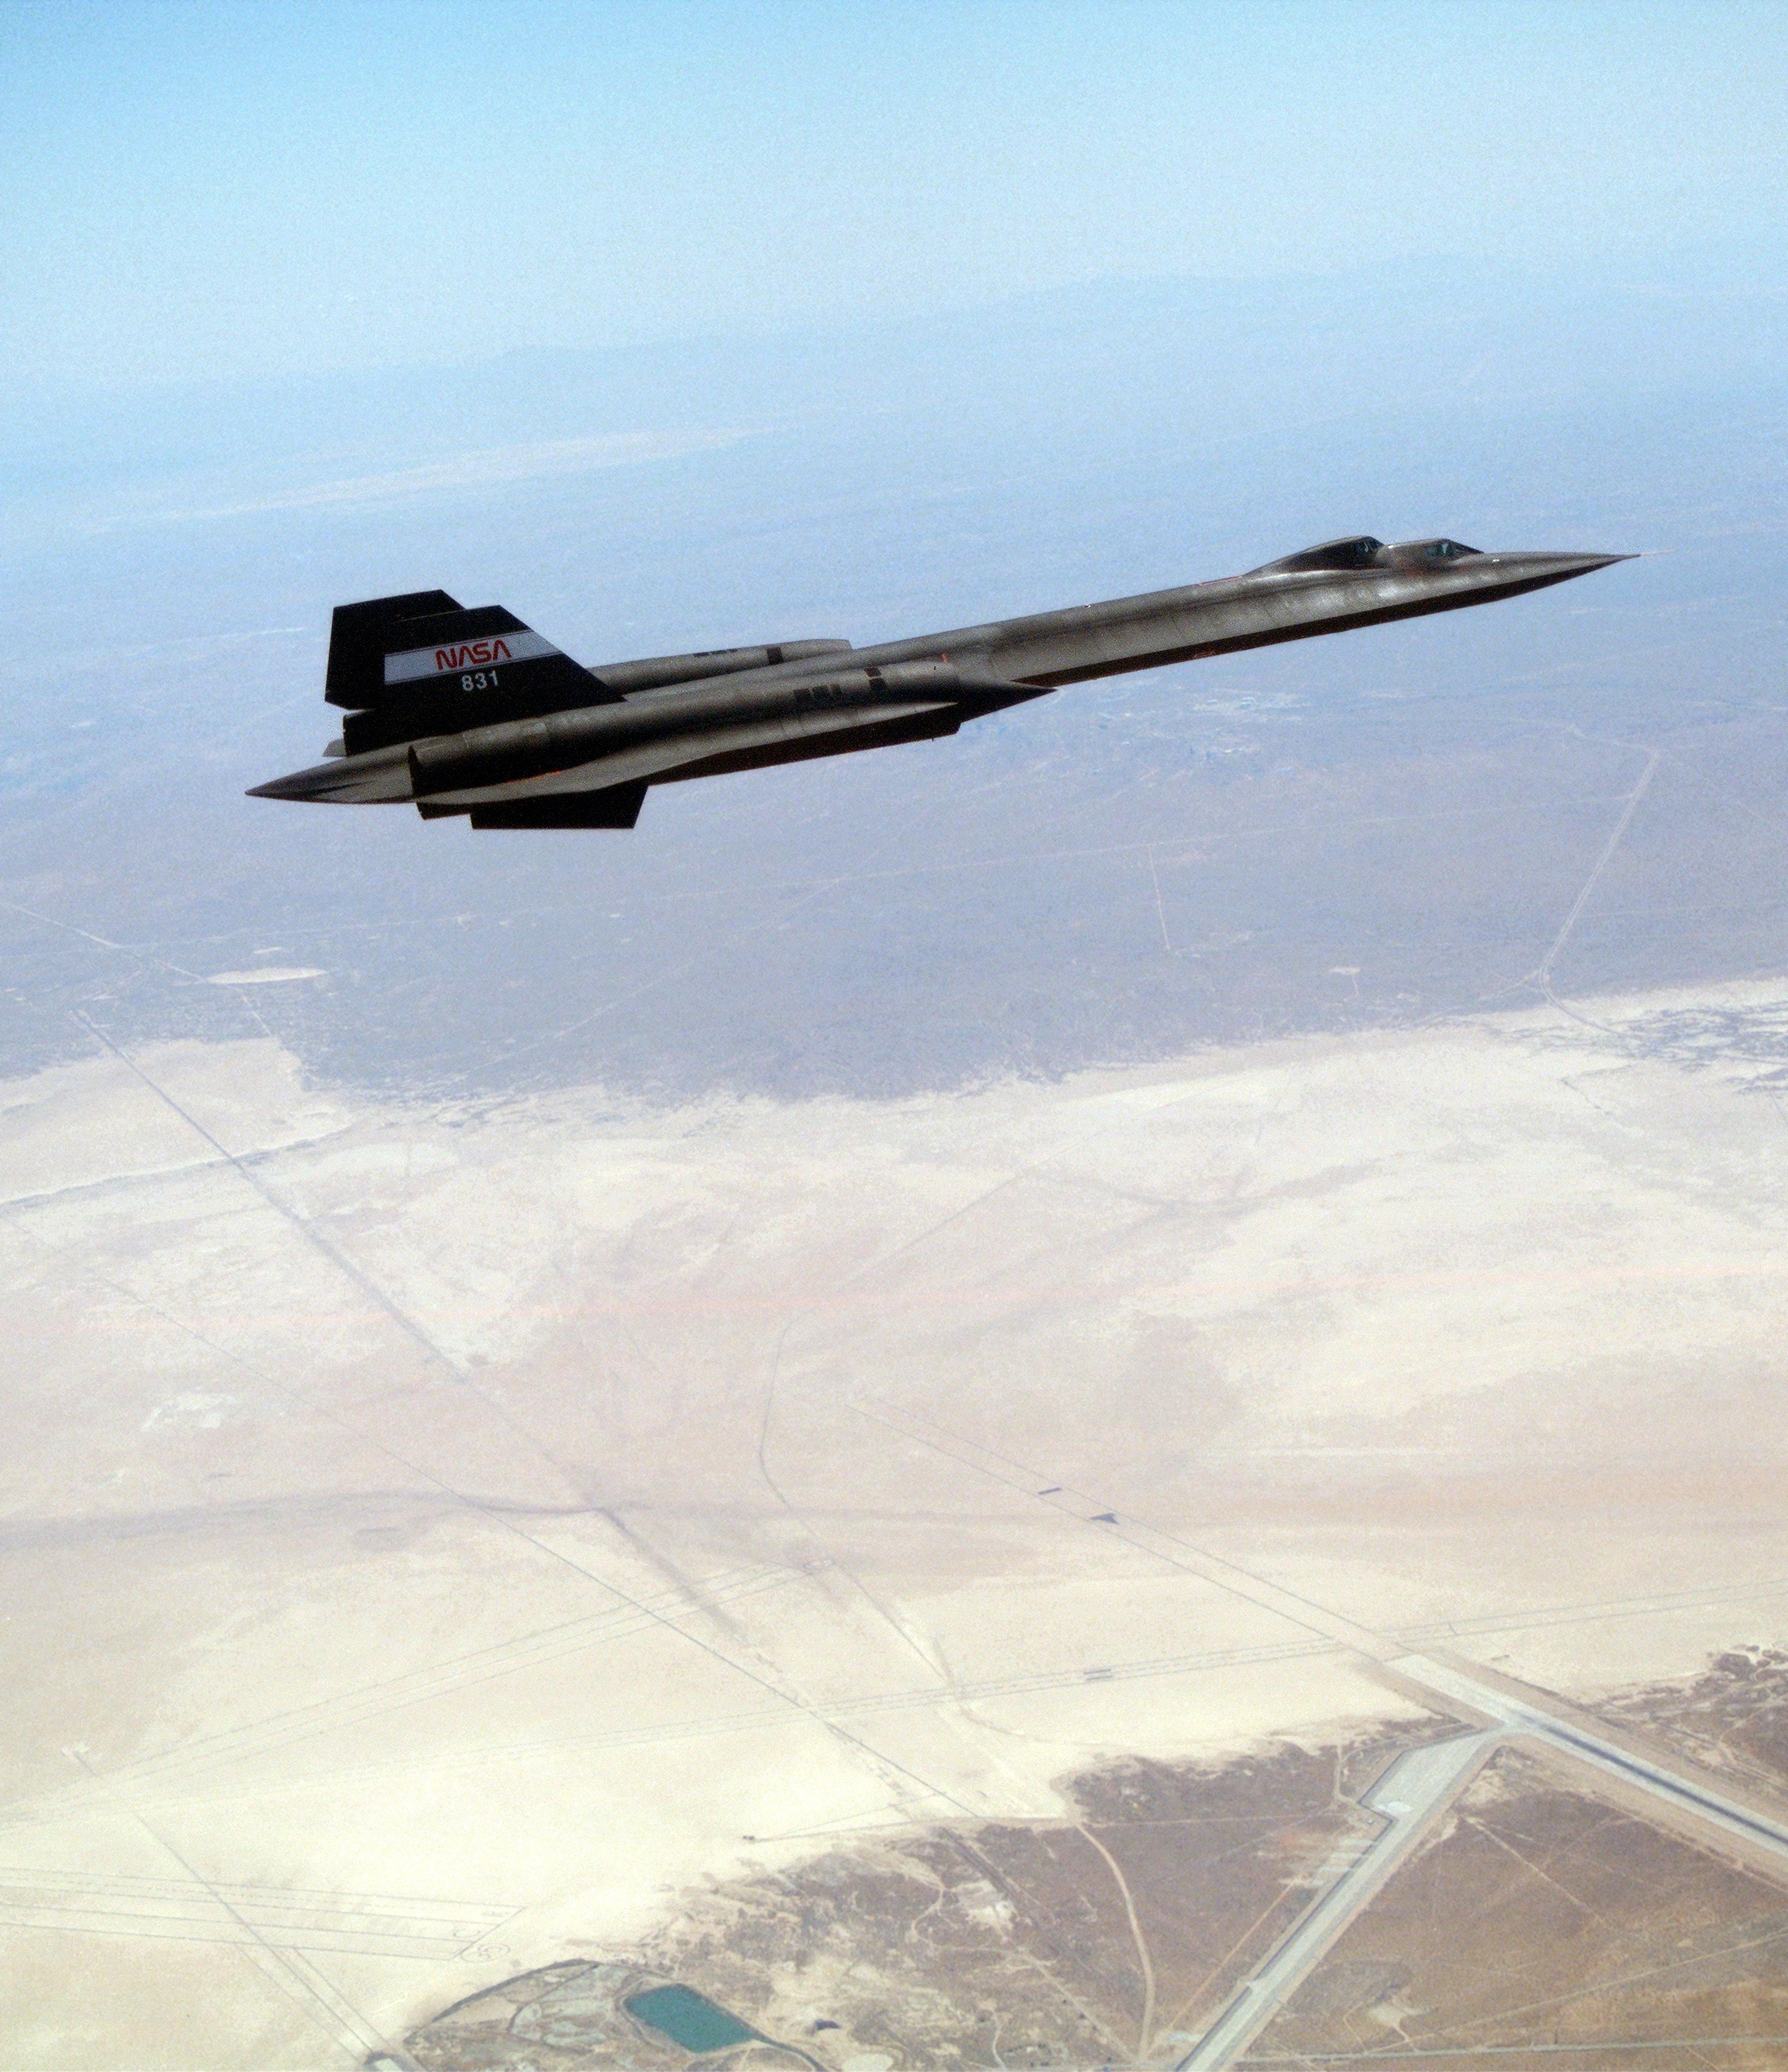 sr 71 blackbird Find great deals on ebay for 1/48 sr-71 in military airplanes models and kits shop with confidence.